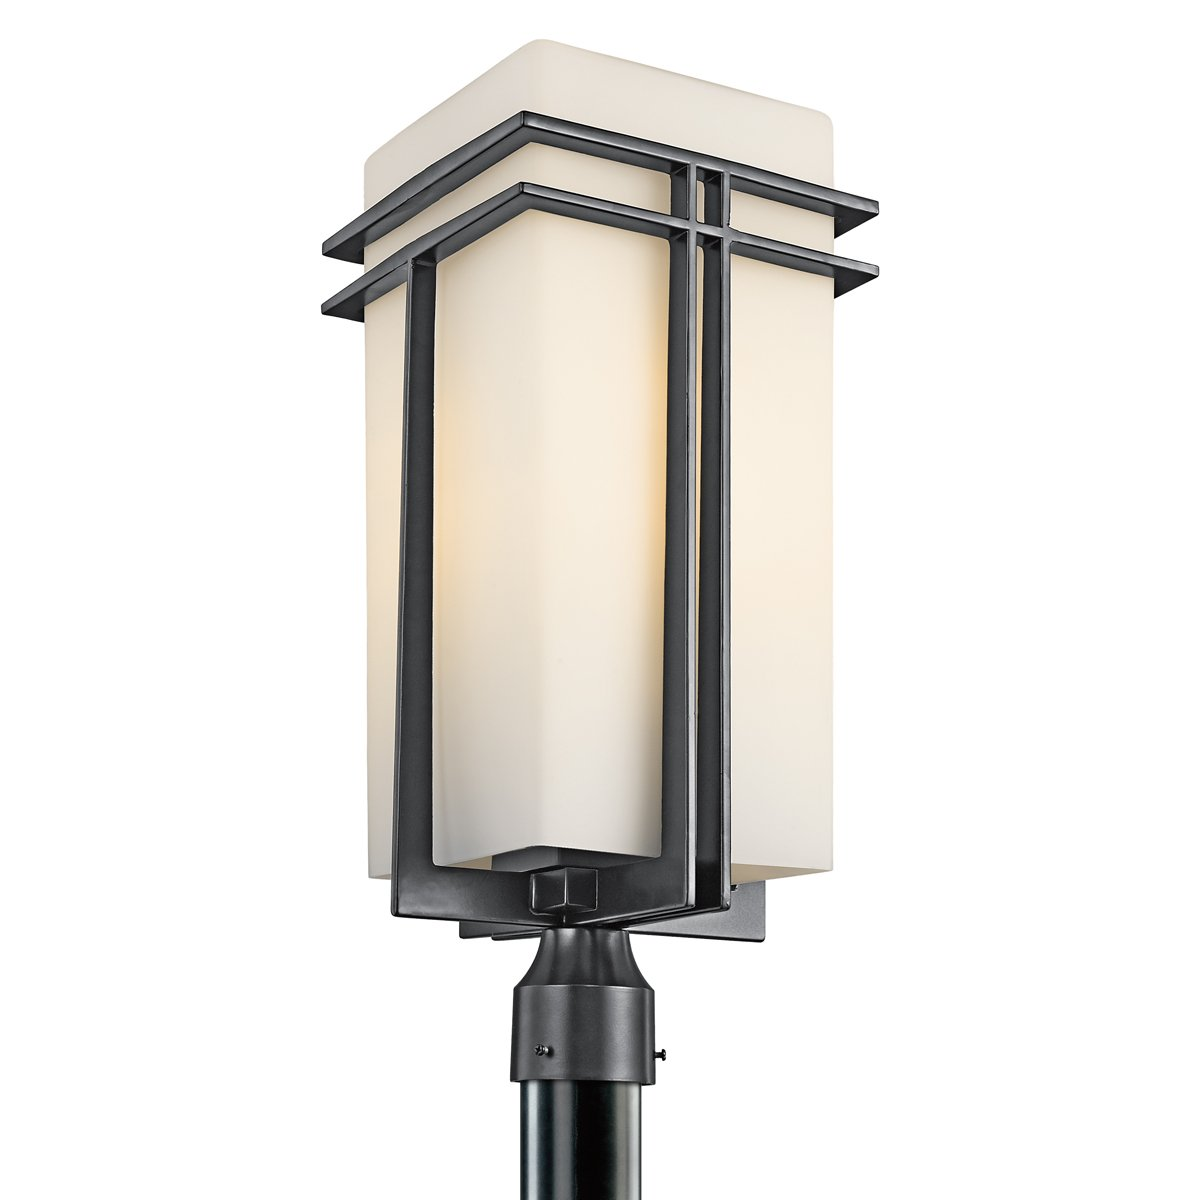 Kichler Lighting 49204BK Tremillo 23-Inch Light Outdoor Post Lantern, Black with Satin-Etched Cased Opal Glass